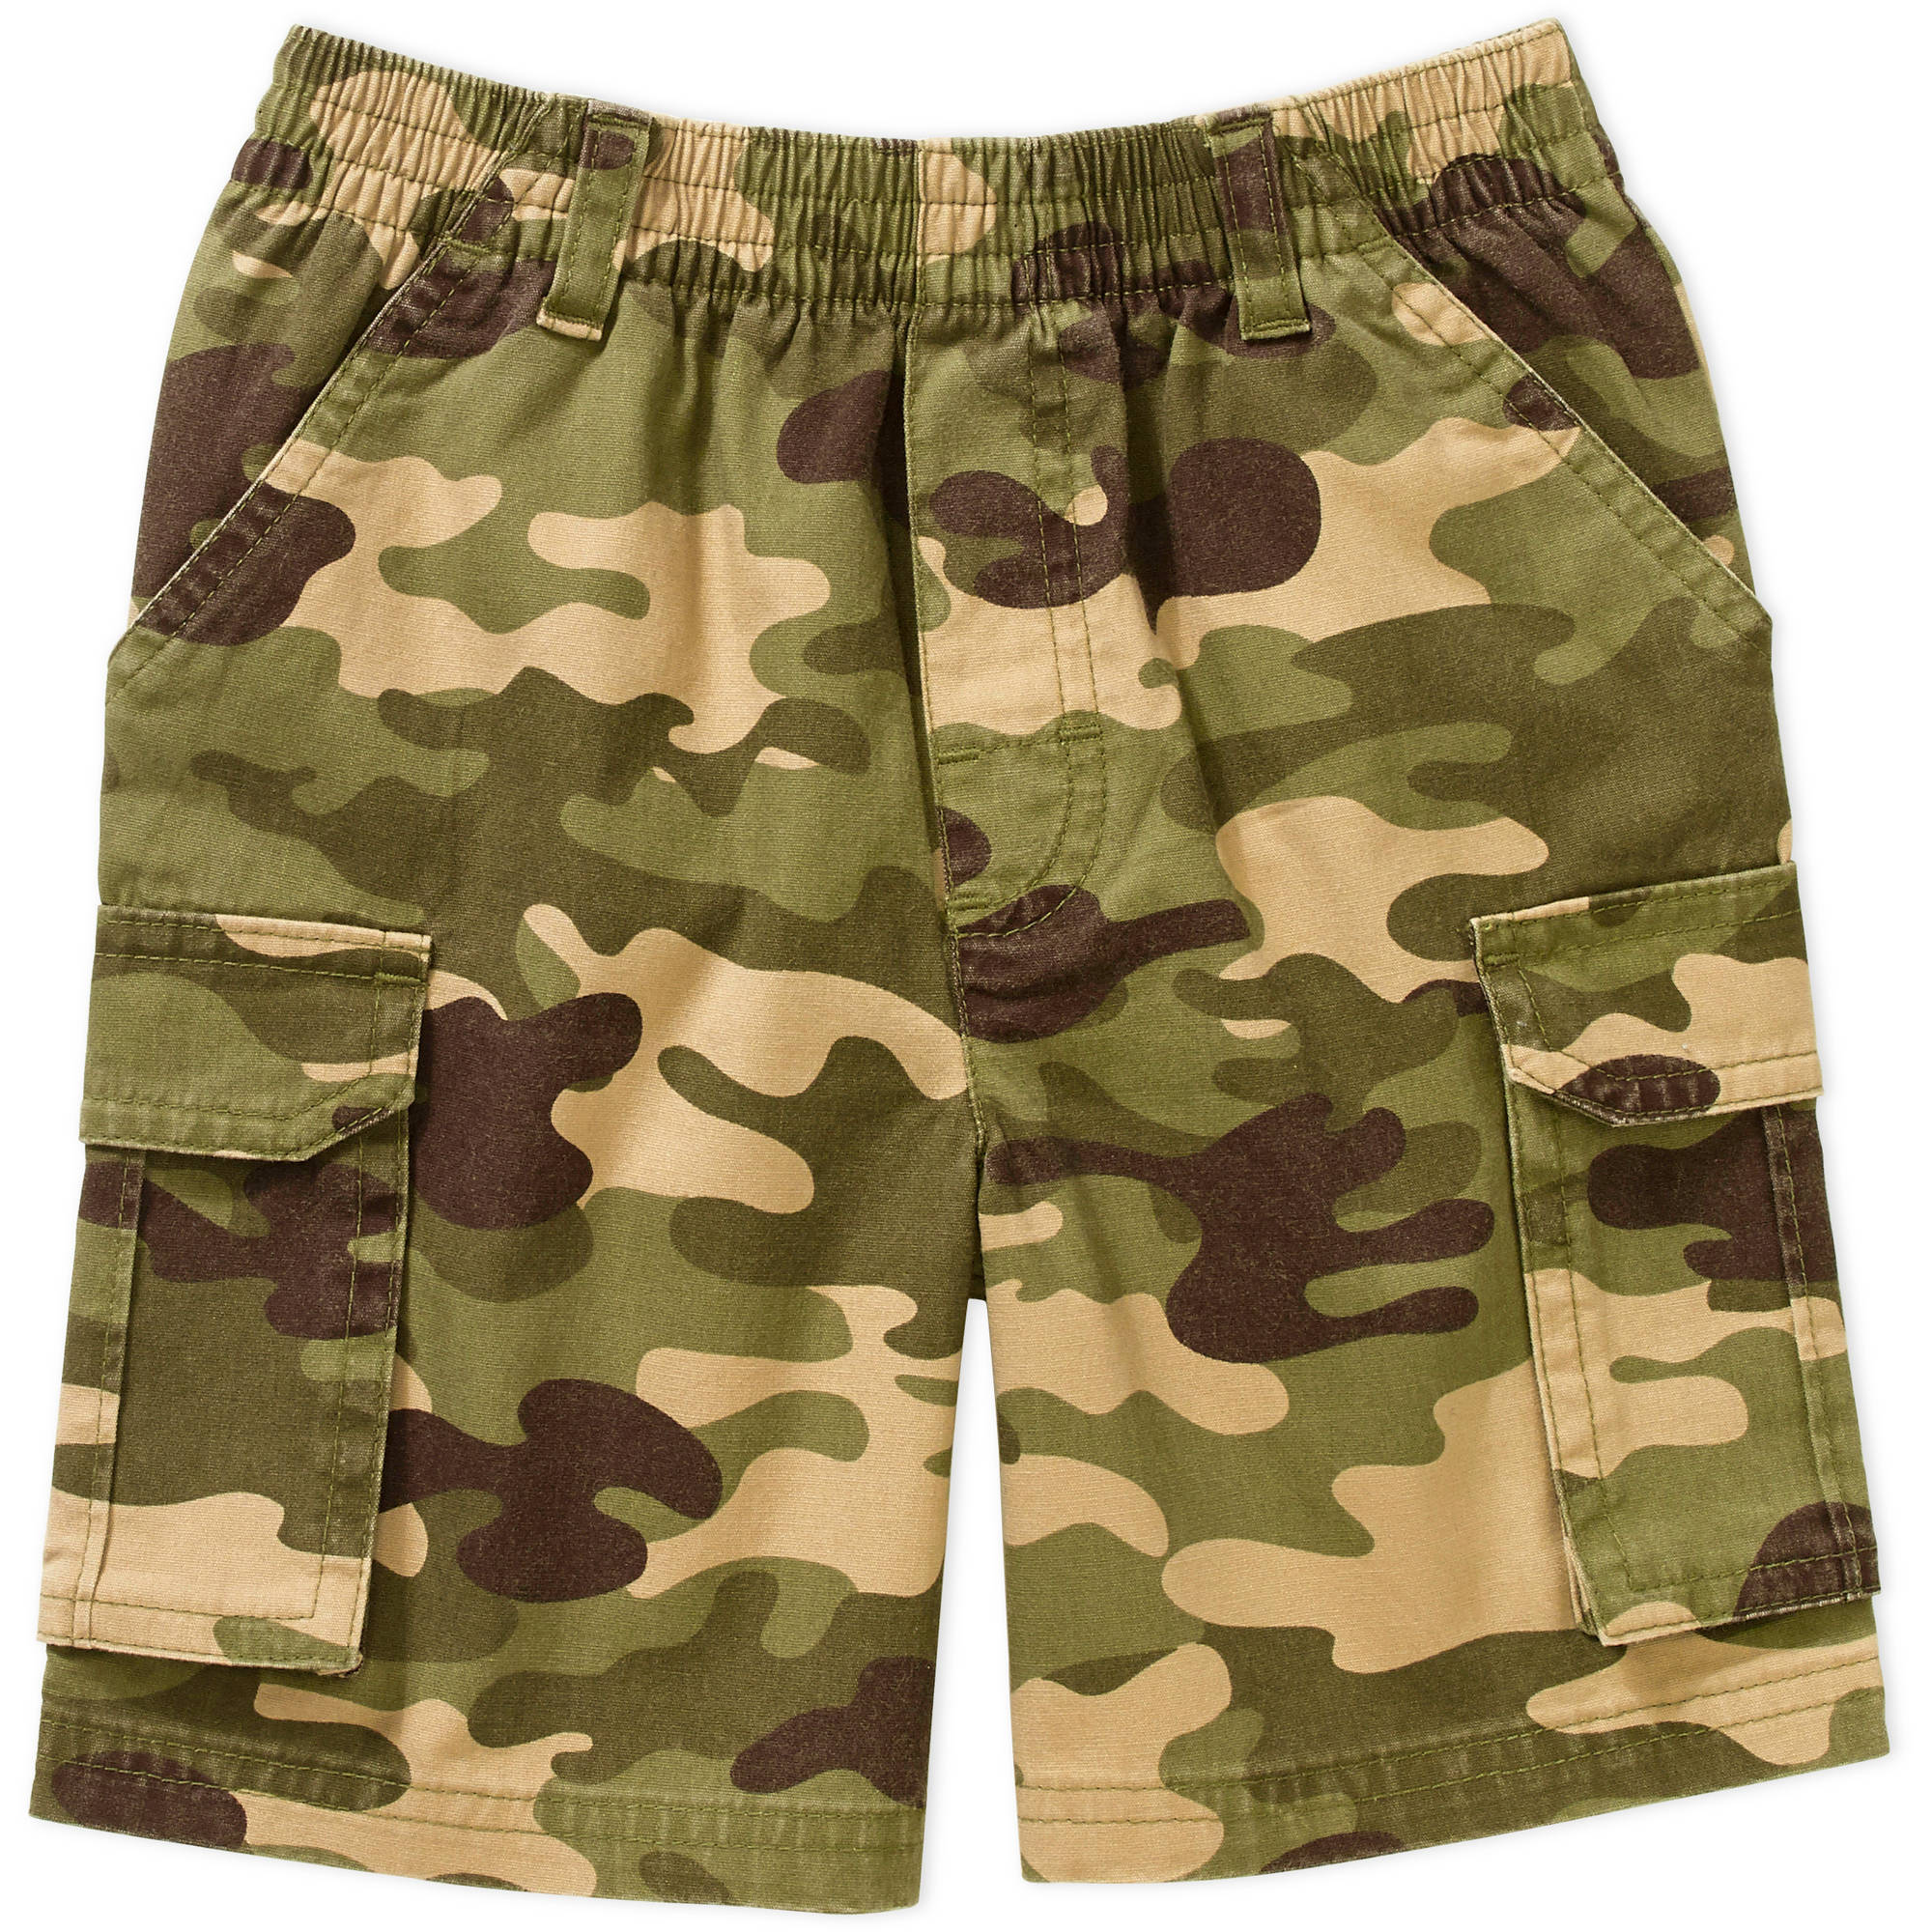 Garanimals Baby Toddler Boy Printed Cargo Shorts